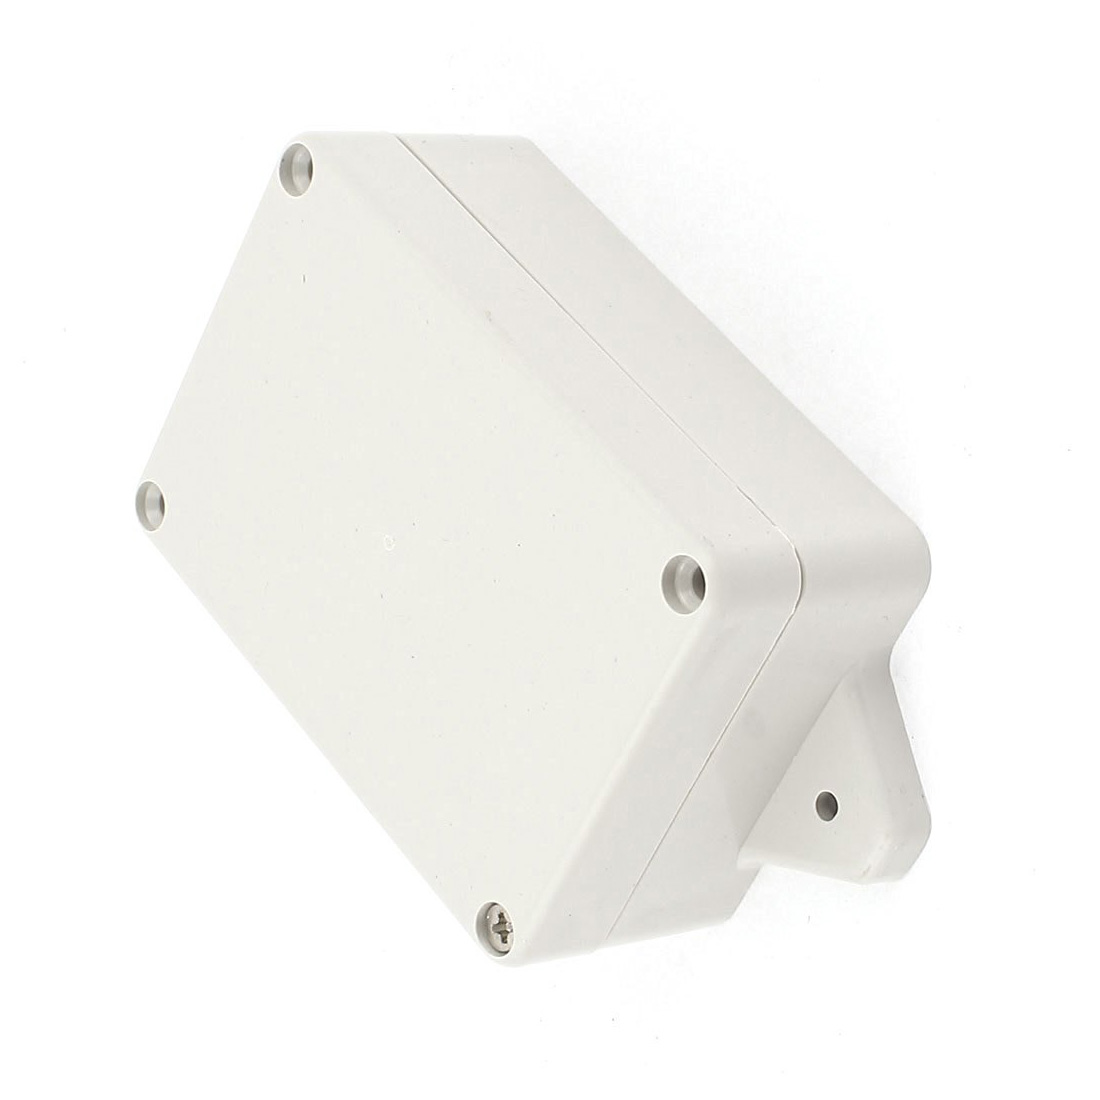 Wholesale 83mm X 58mm X 33mm Waterproof Plastic Sealed Electrical Junction Box